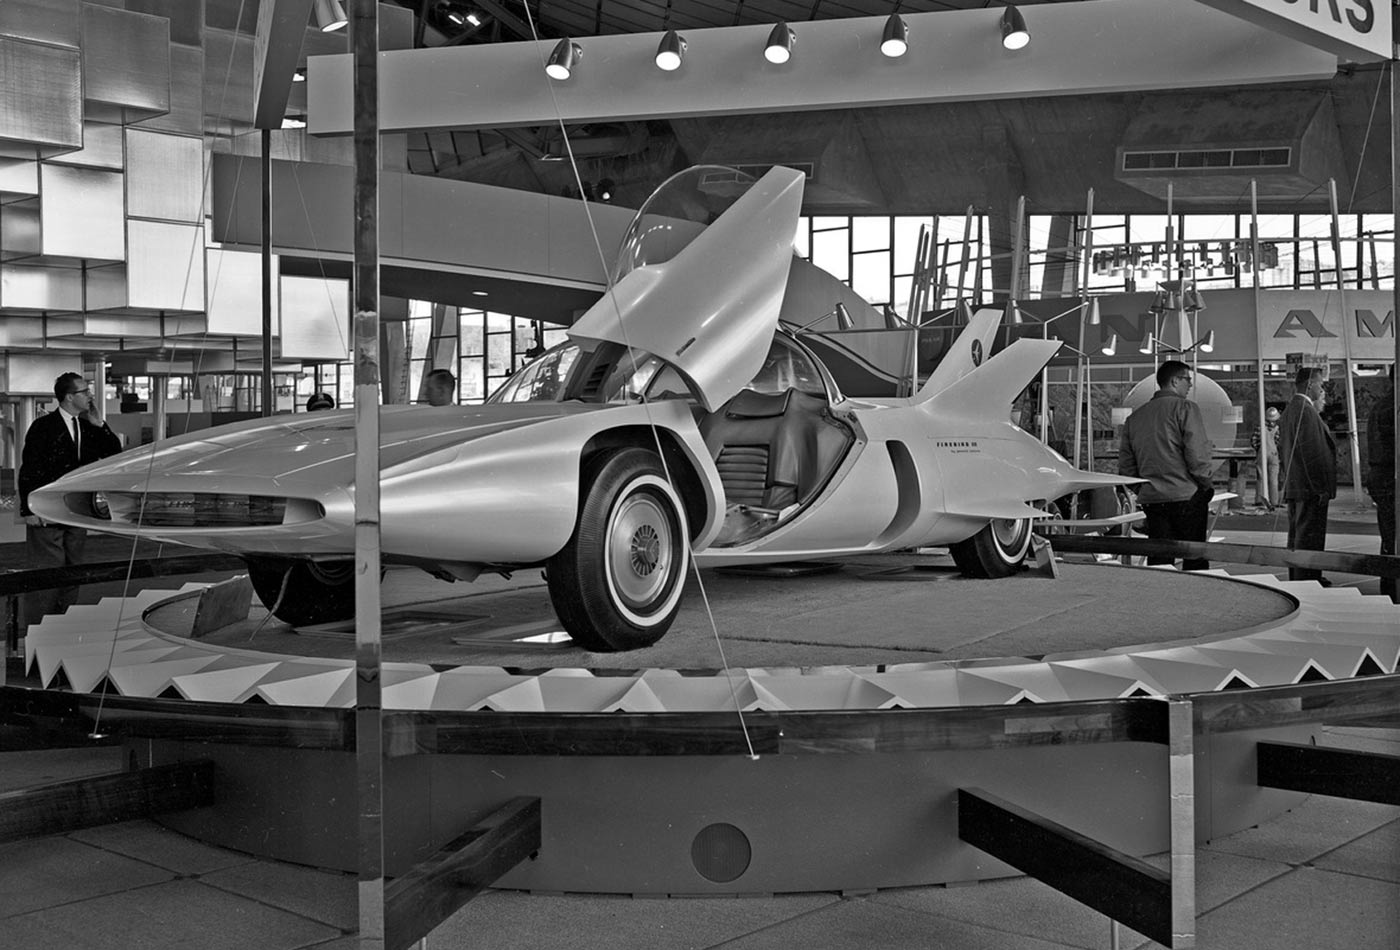 """During the 1950s and '60s, General Motors showcased the Firebirds, a series of experimental cars described to have an """"electronic guide system [that] can rush it over an automatic highway while the driver relaxes."""" This is the Firebird III, displayed at the 1962 World's Fair."""